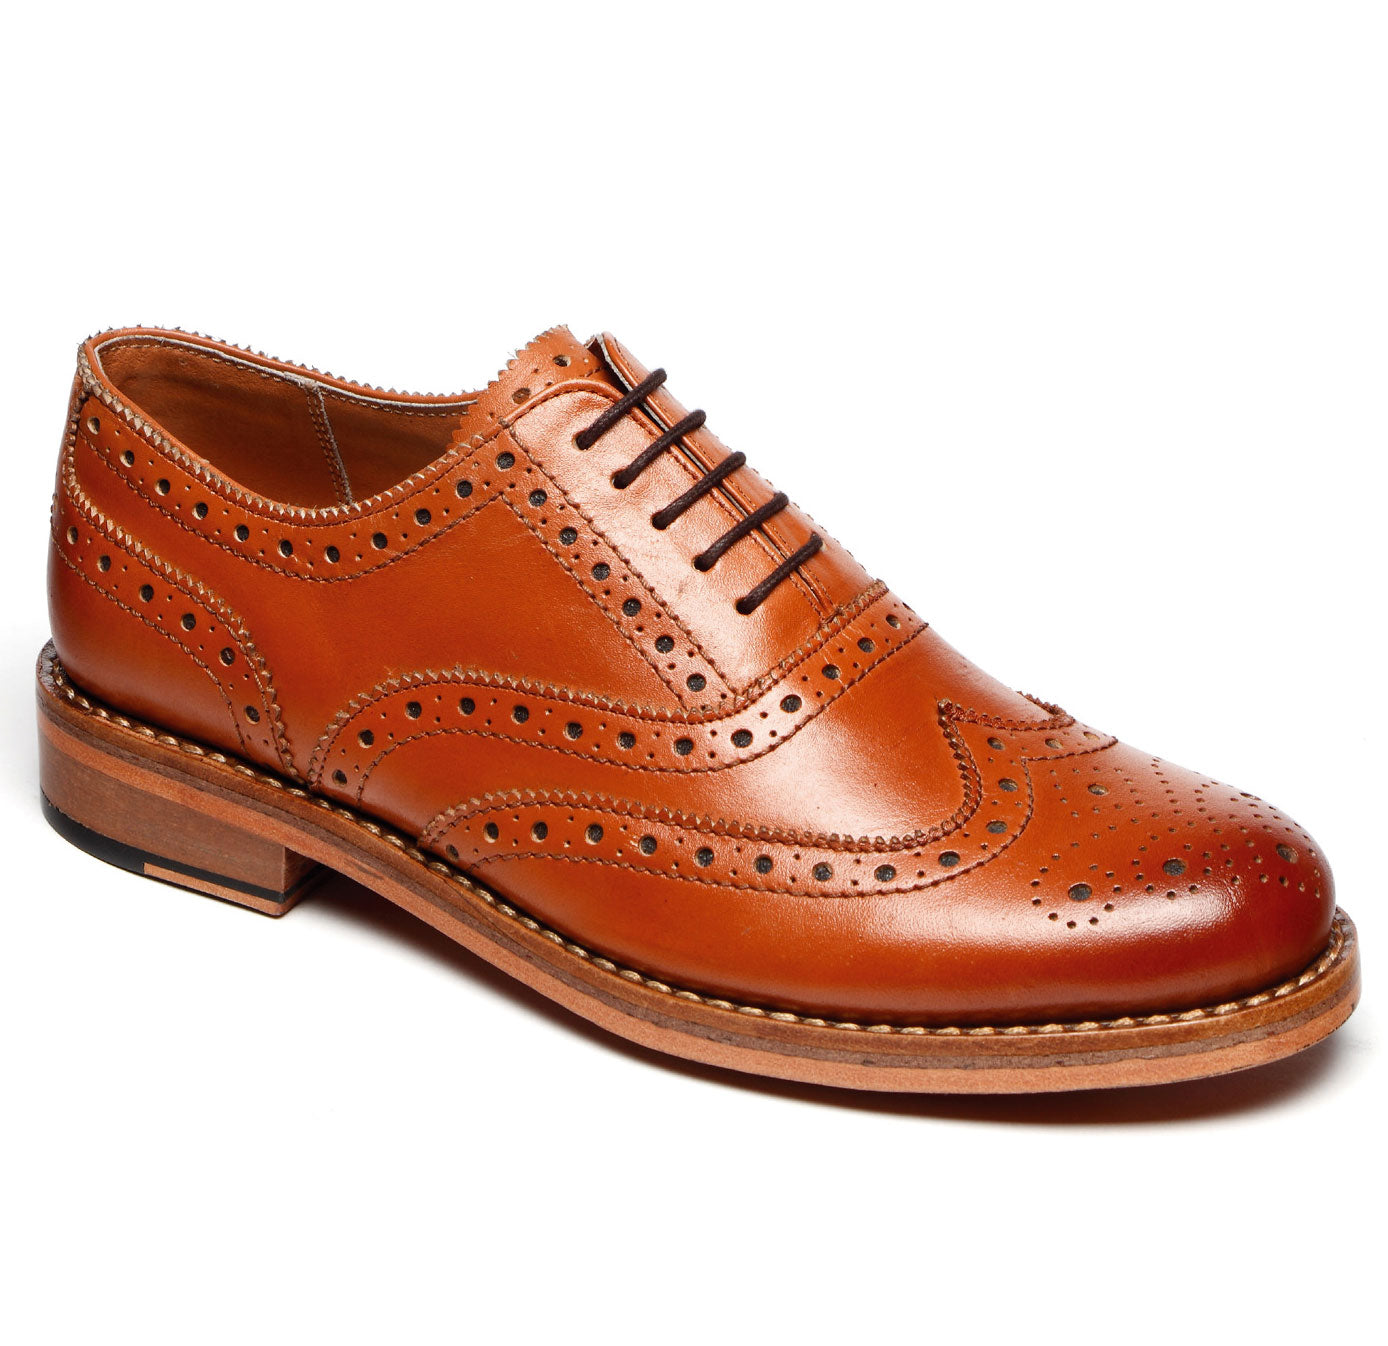 c1b62d32e76 Catesby All Leather Brogue Shoe – Hollands Country Clothing